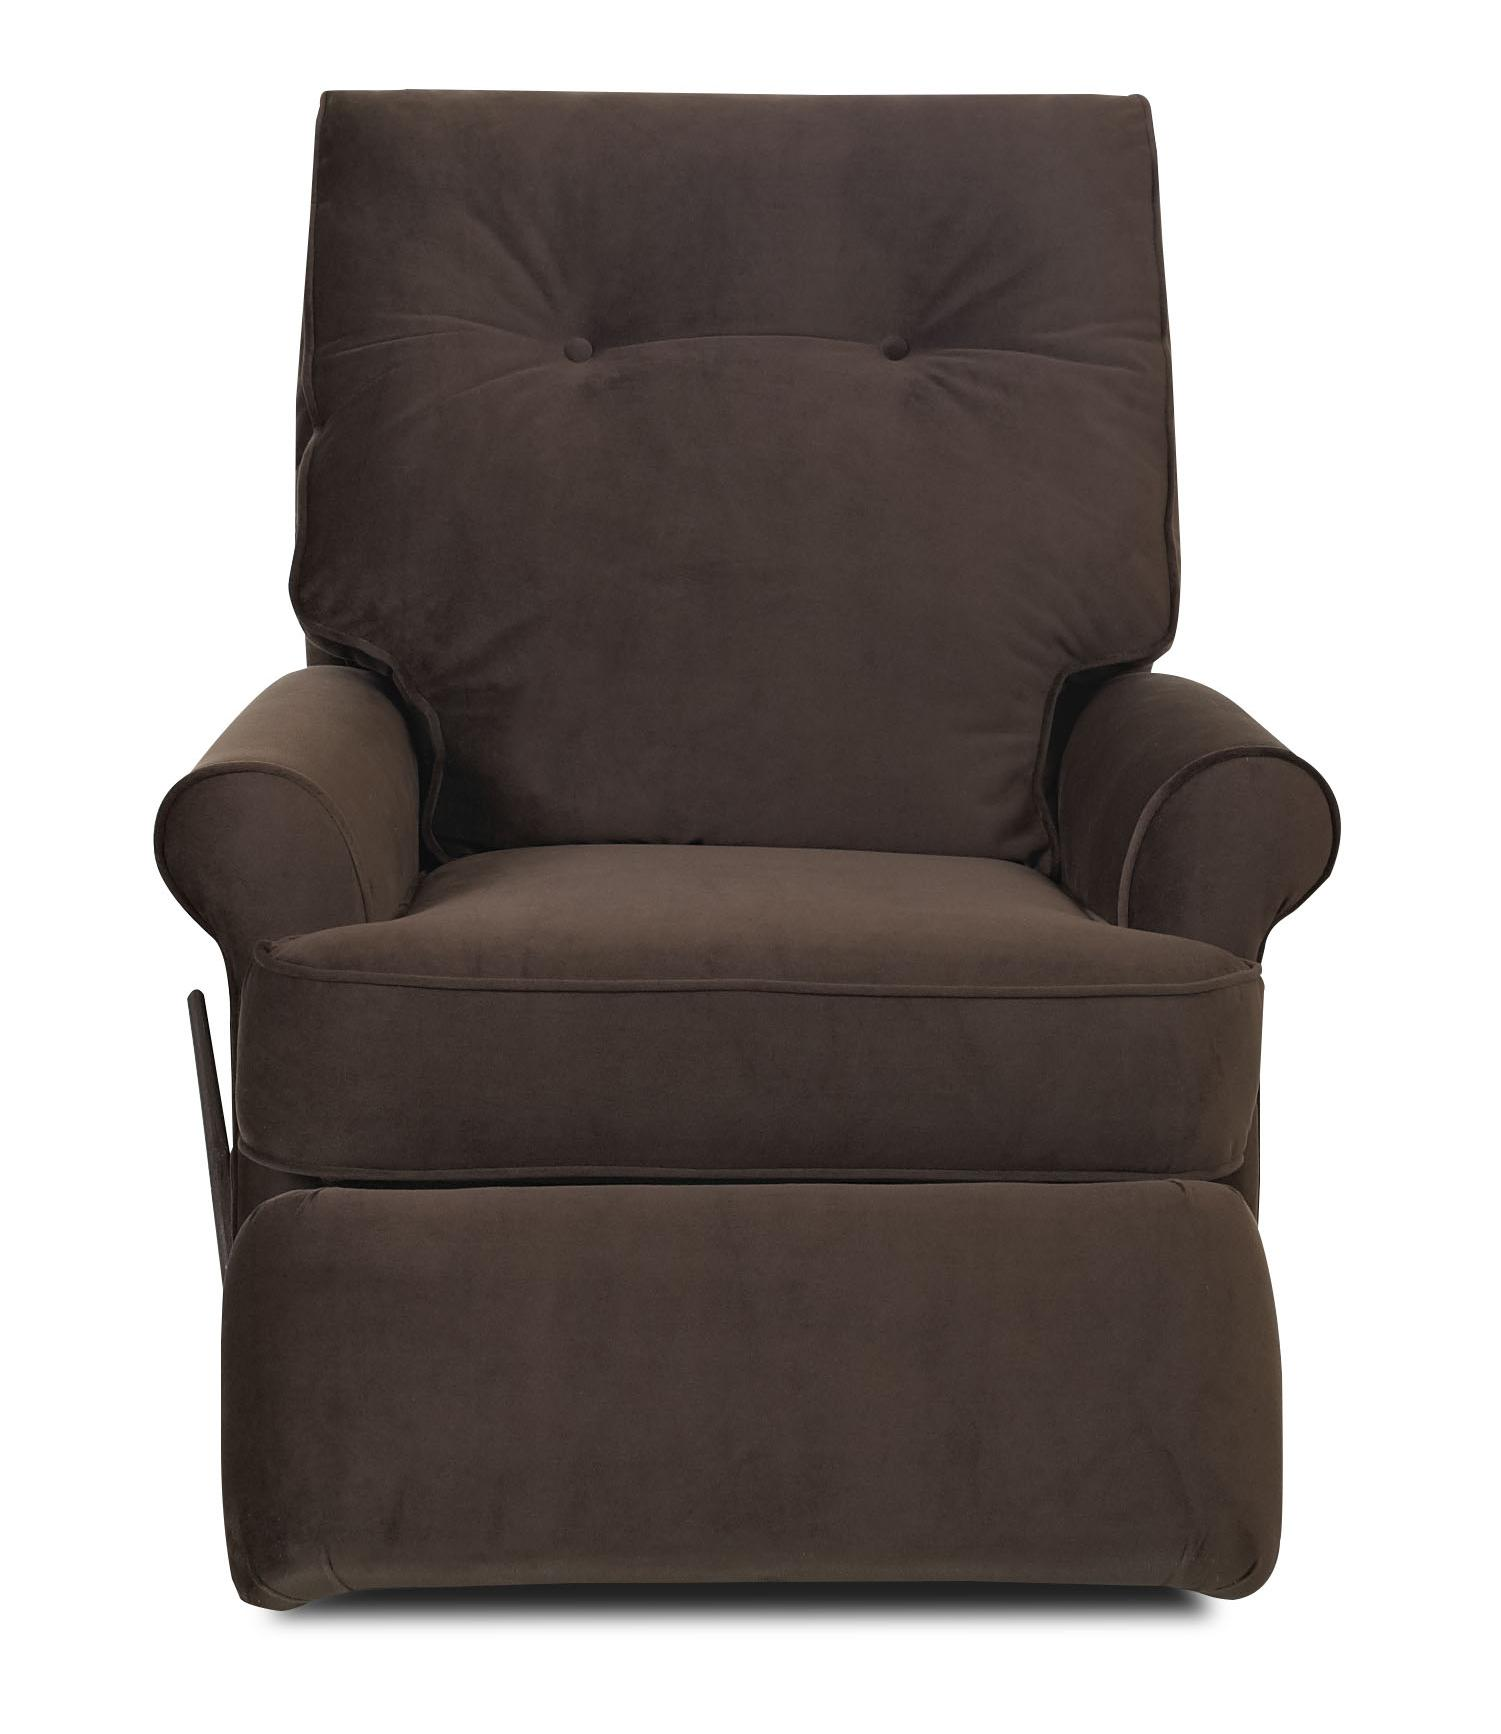 Clearwater Transitional Power Reclining Chair By Klaussner Wolf Furniture